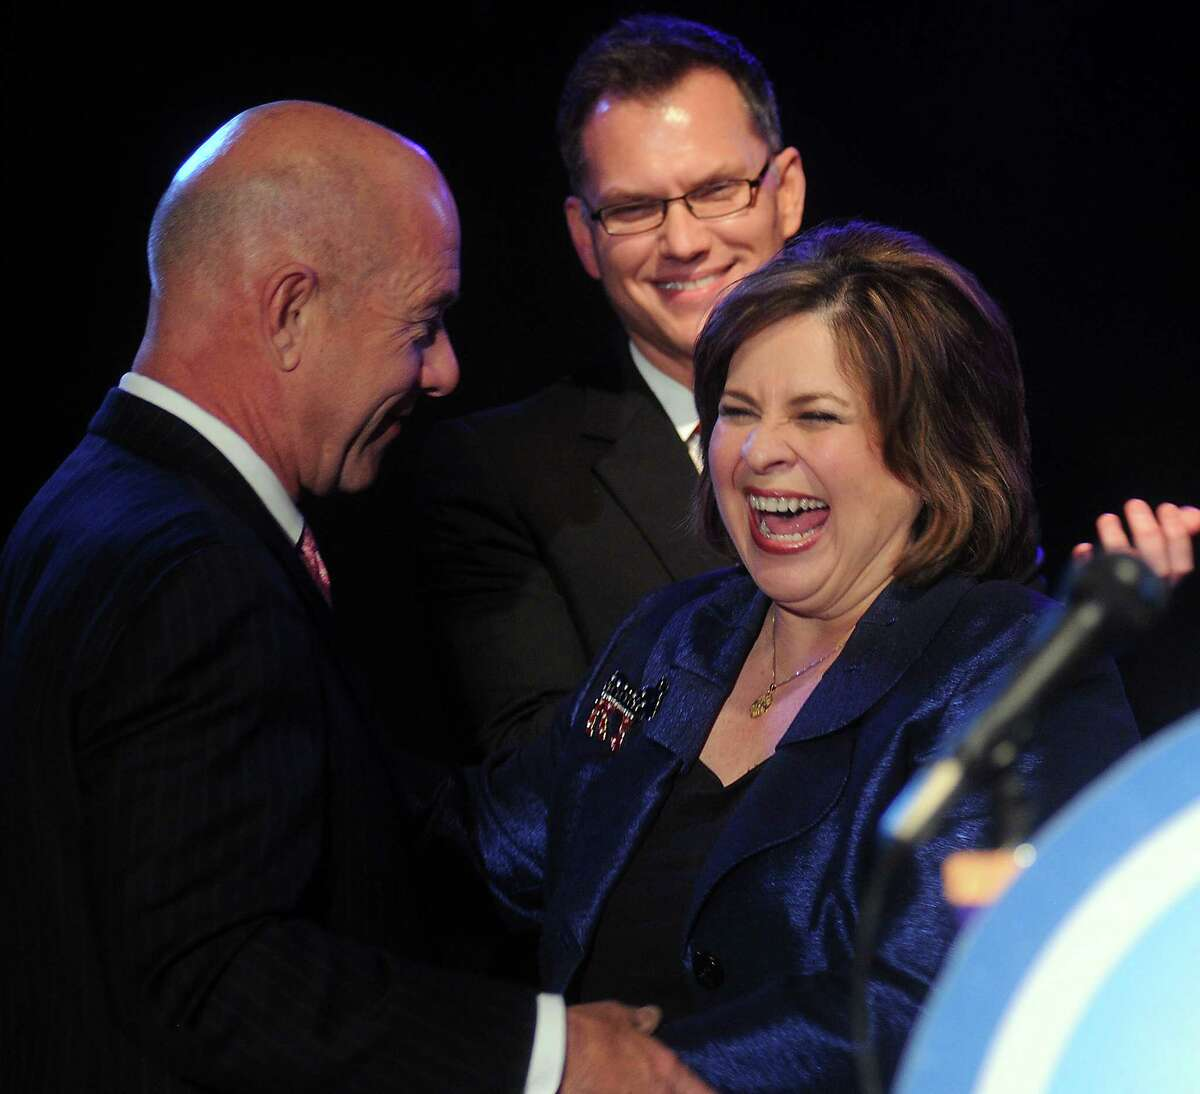 State senator John Whitmire welcomes lieutenant governor candidate Leticia Van de Putte at the 2nd Annual Toast to a Blue Year Celebration at Warehouse Live Thursday Jan 16 2014.(Dave Rossman photo)